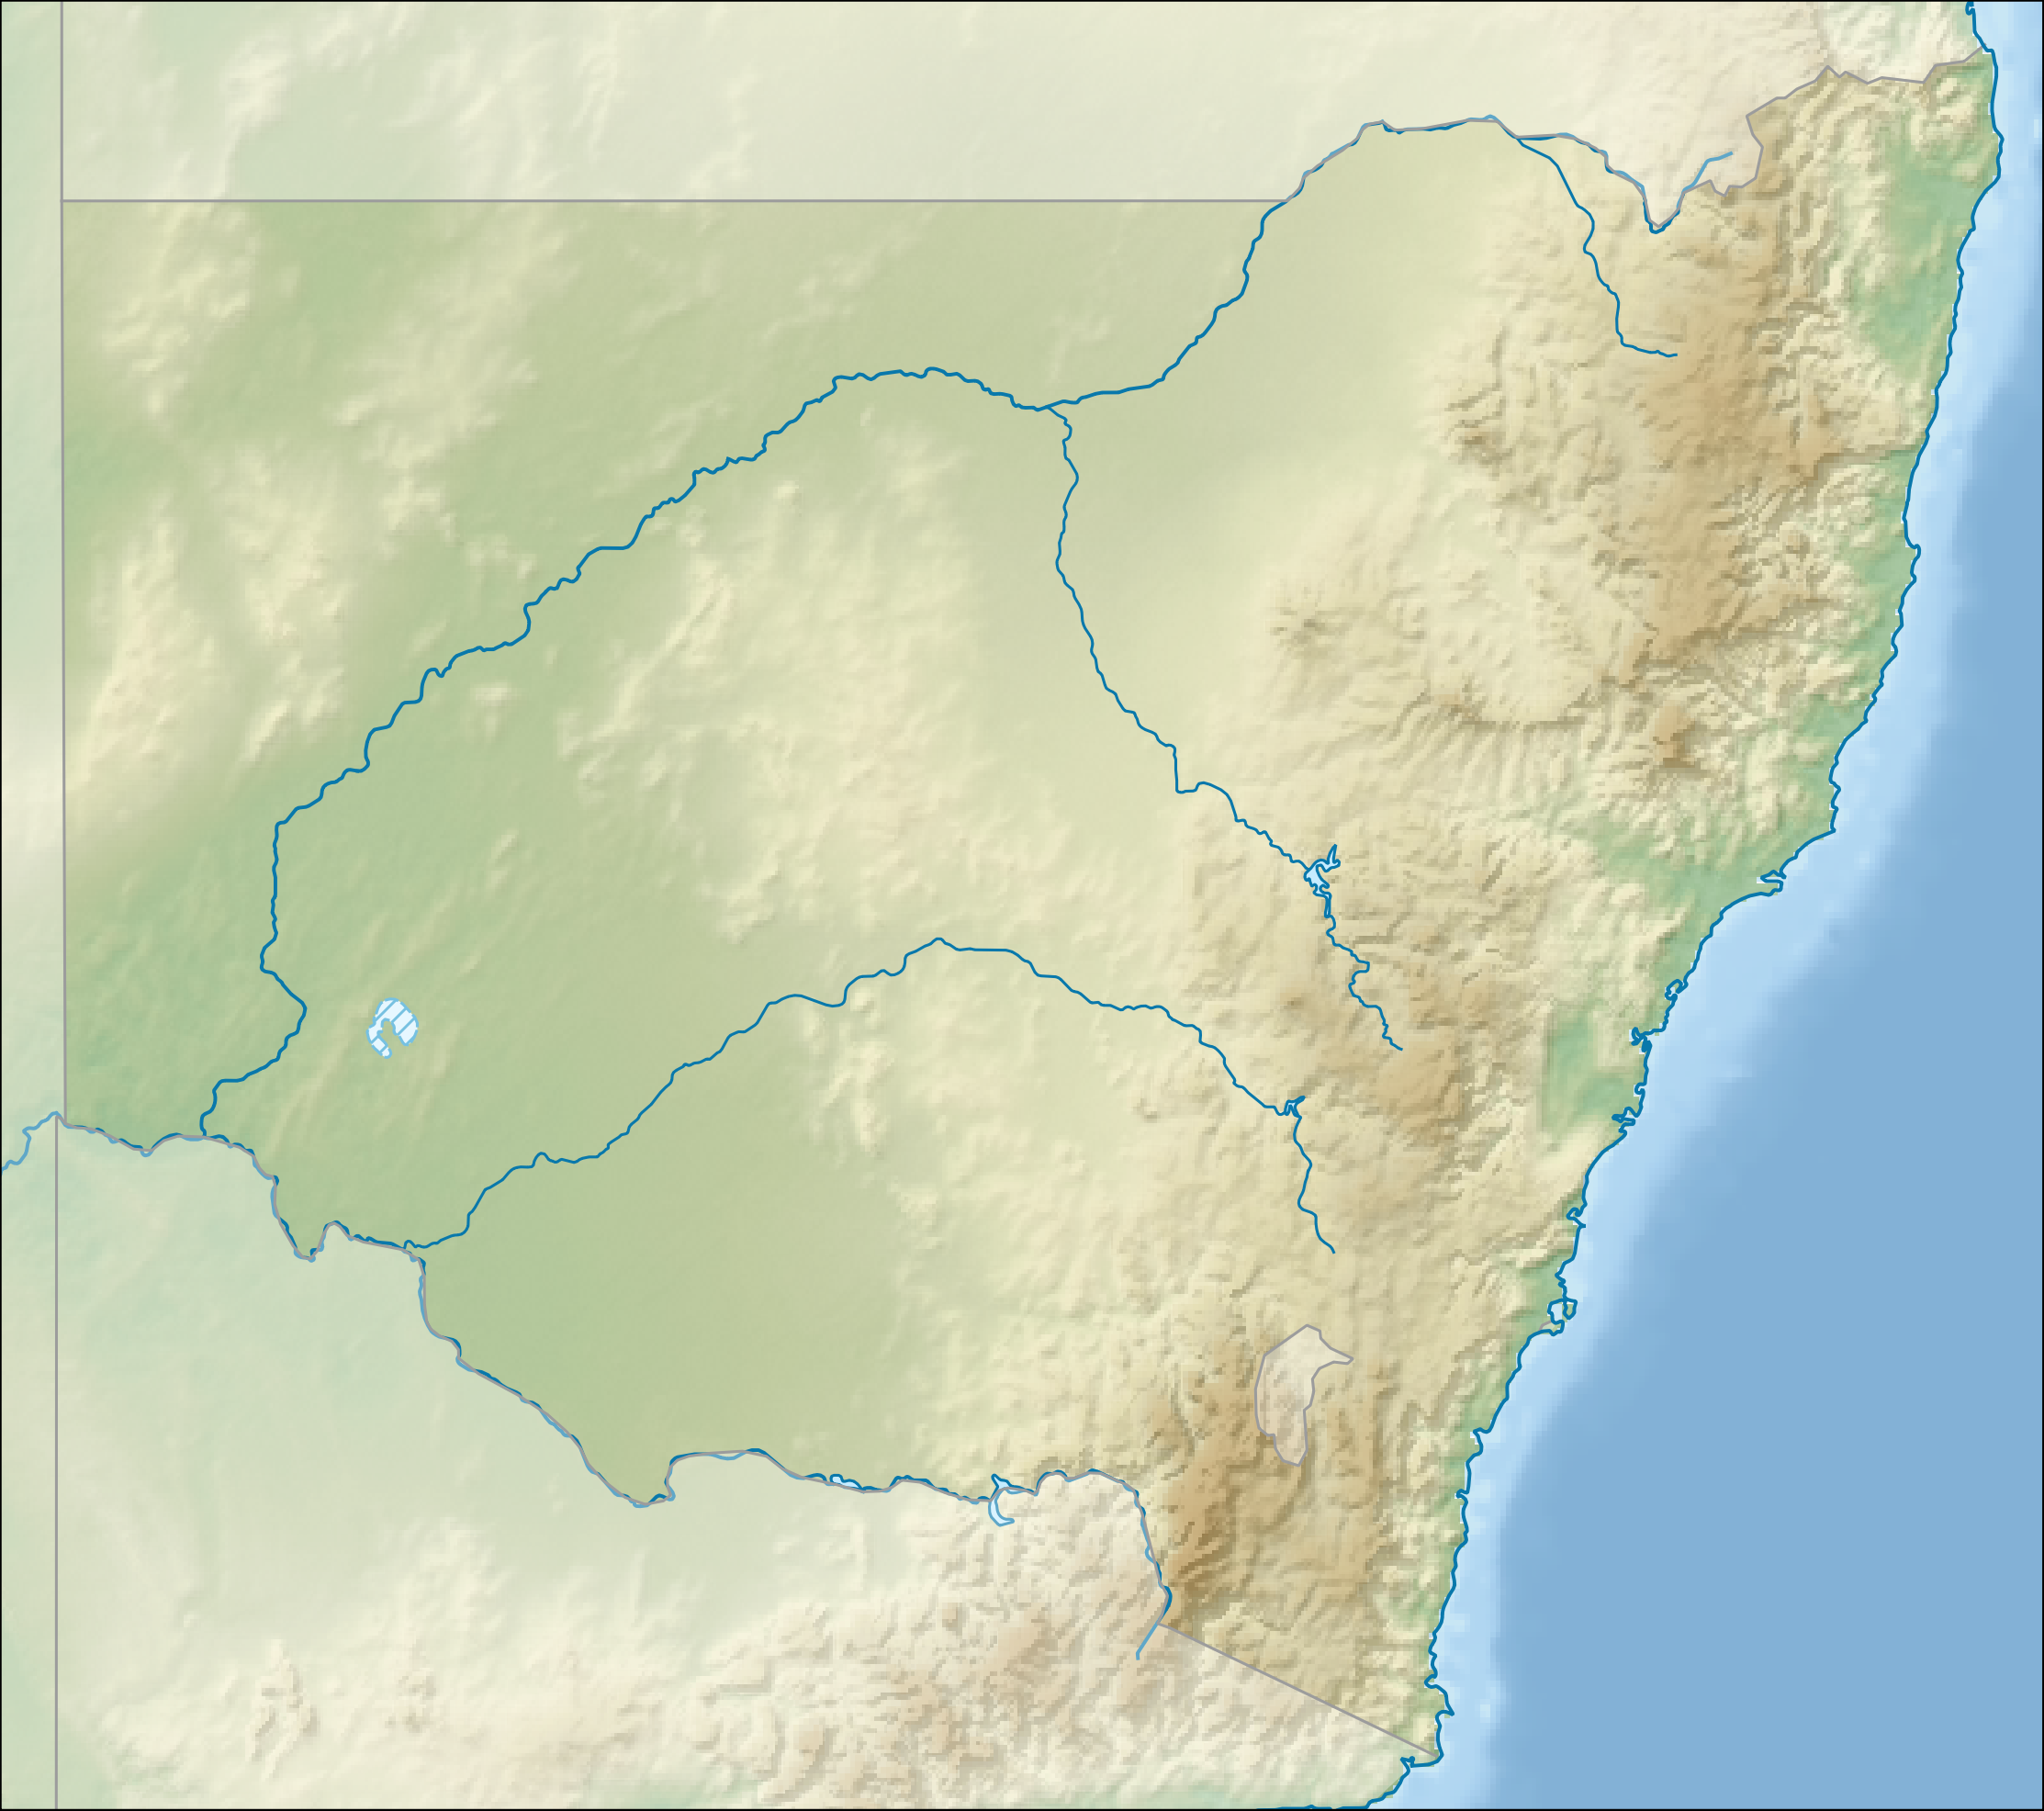 FileAustralia New South Wales relief location mappng Wikimedia